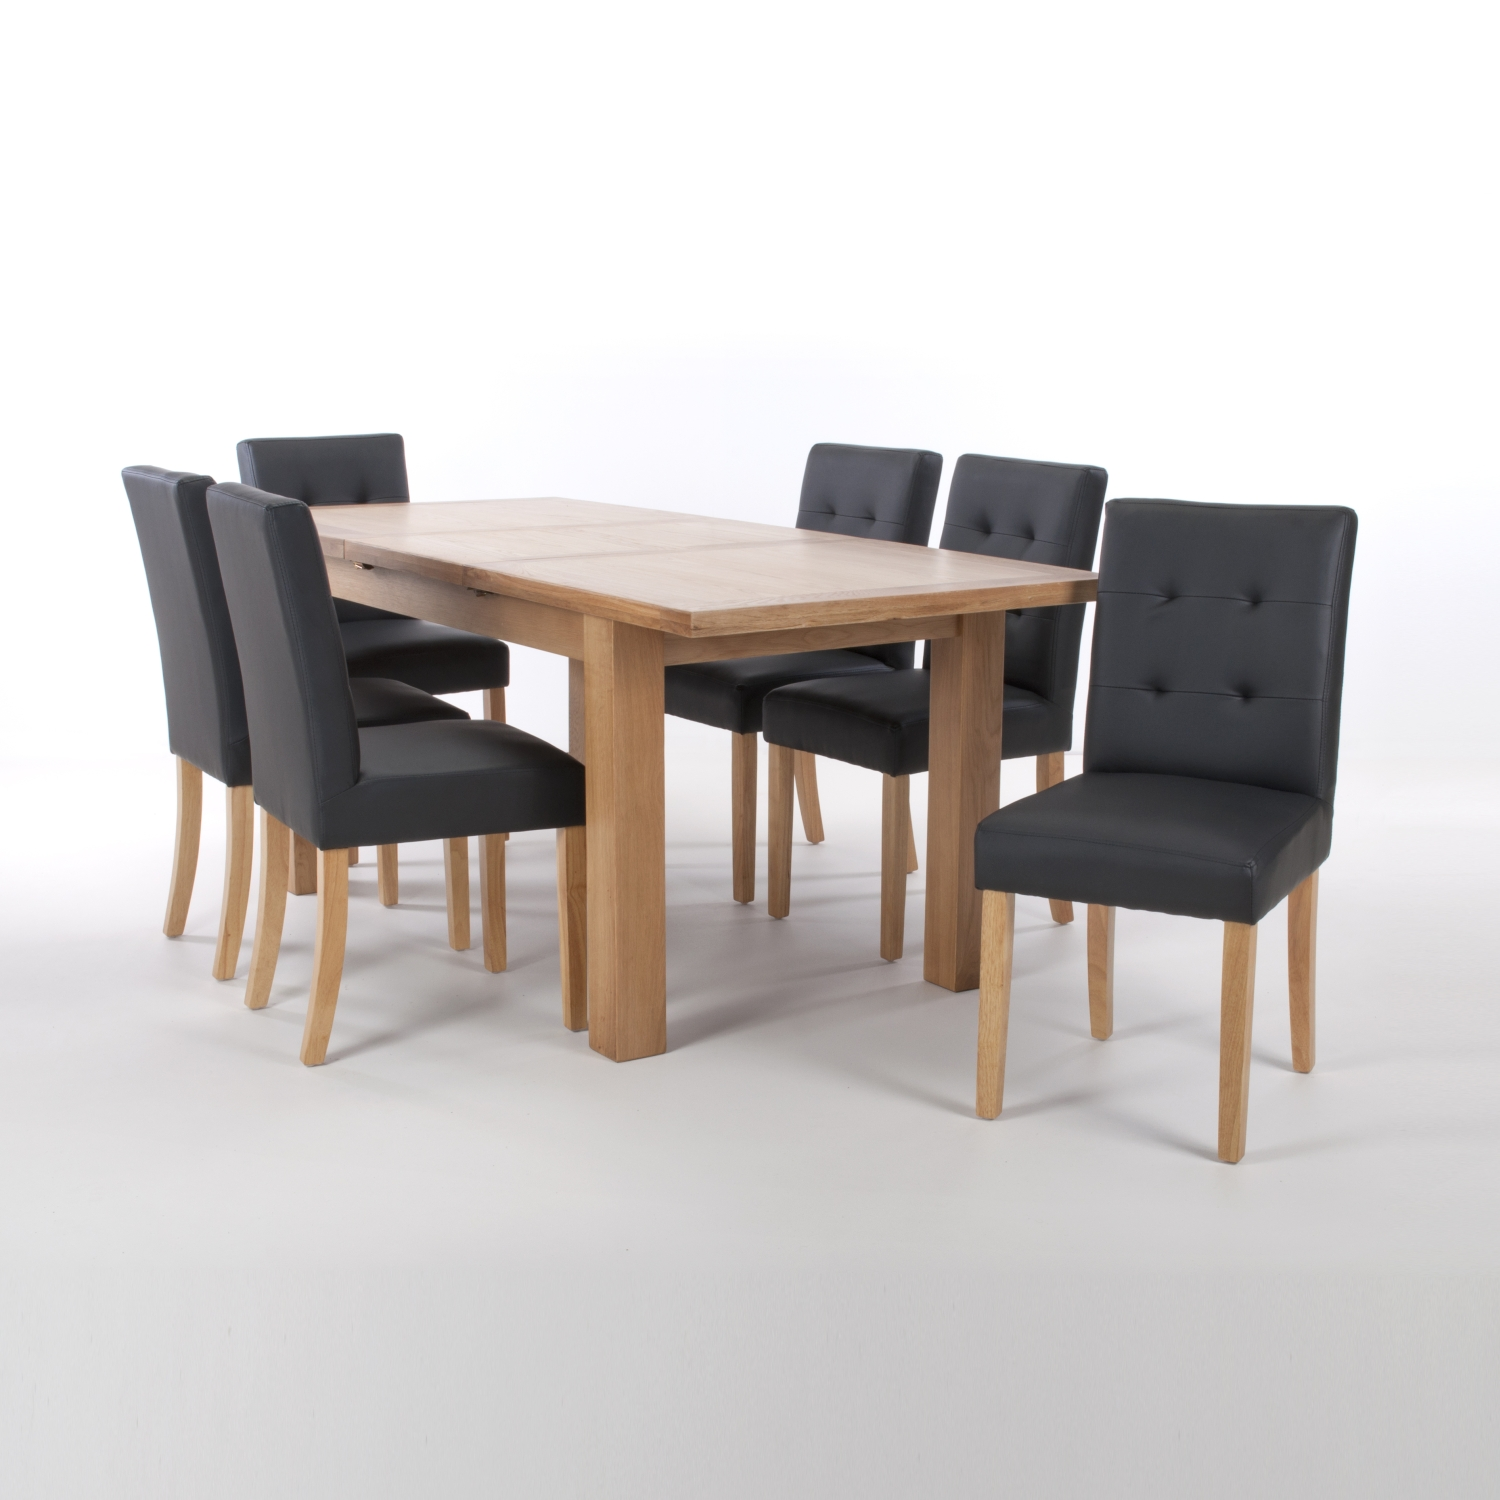 Solid Oak Extendable Dining Table with 8 Stitched Back Chairs in Matt Leather Effect Black with Natural legs